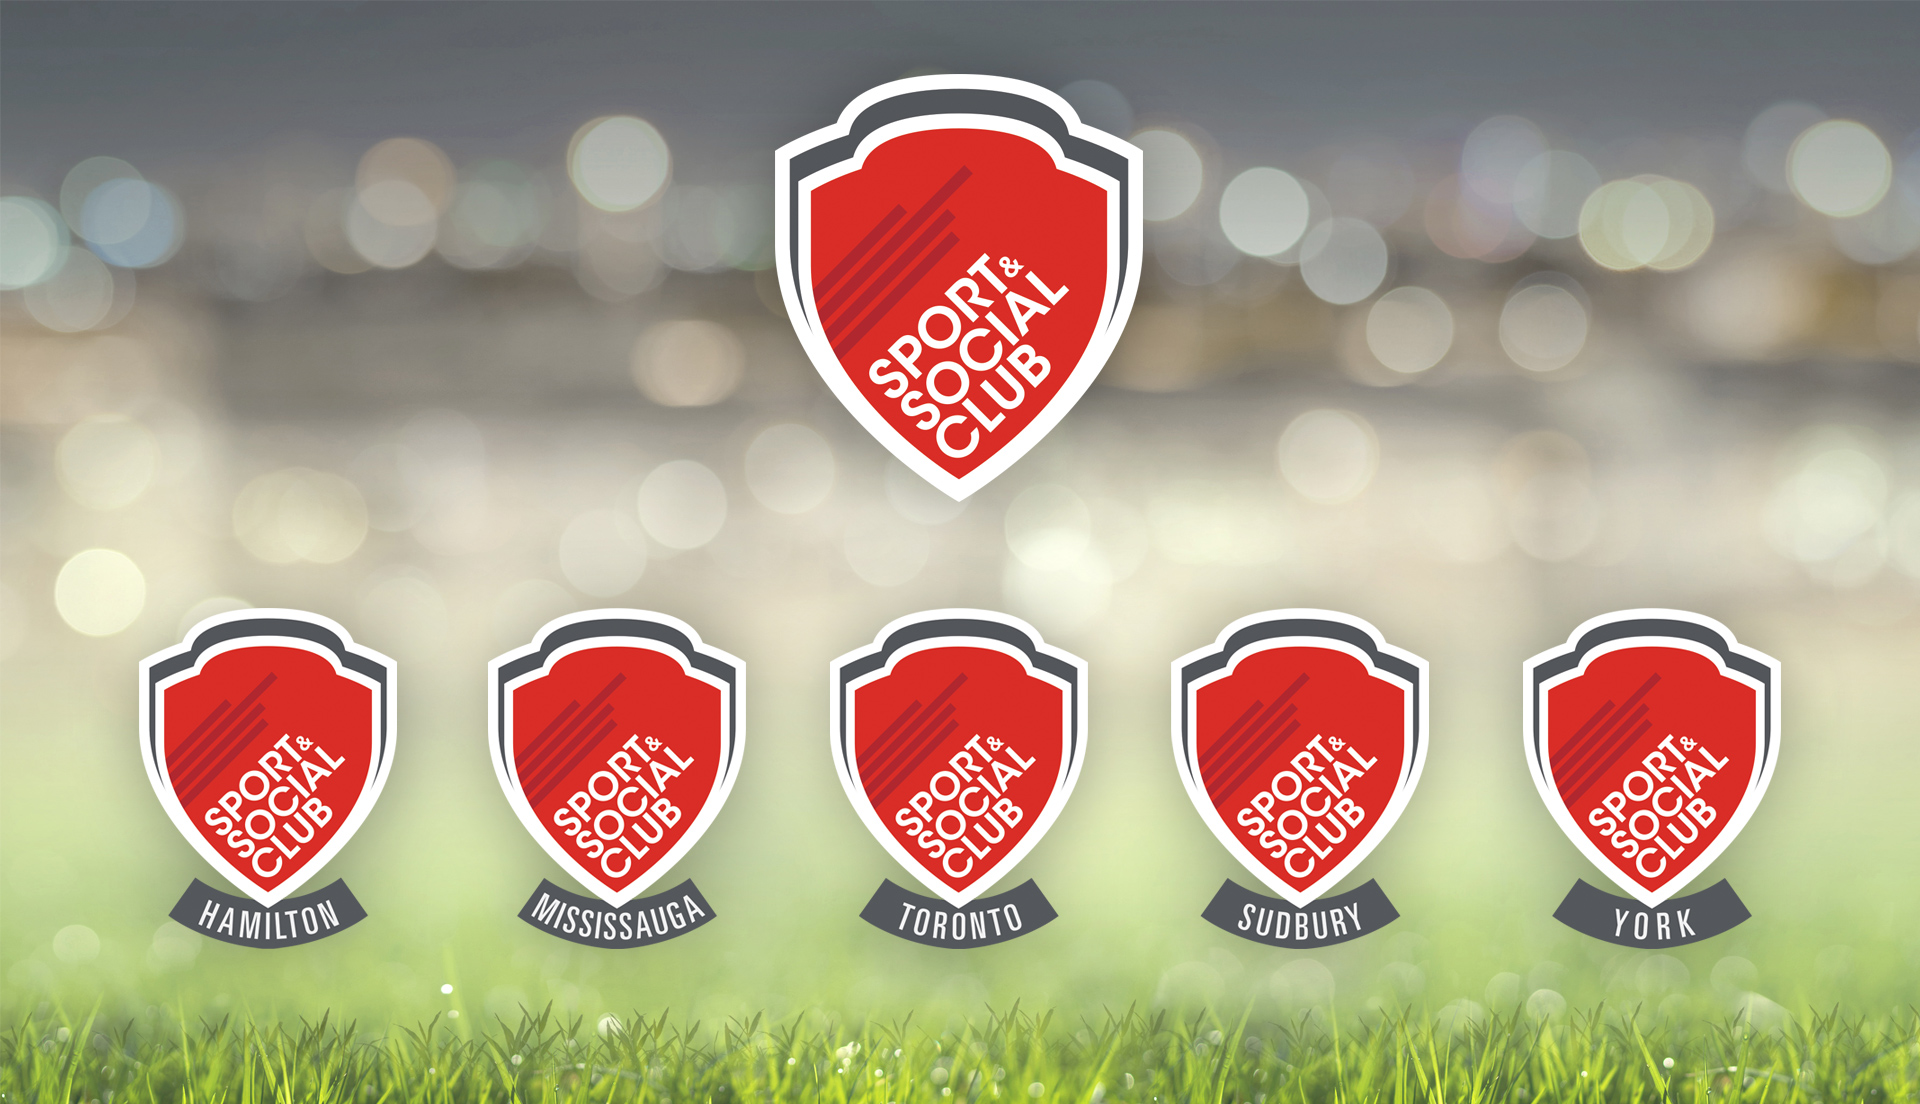 Sports & Social Club logo designs